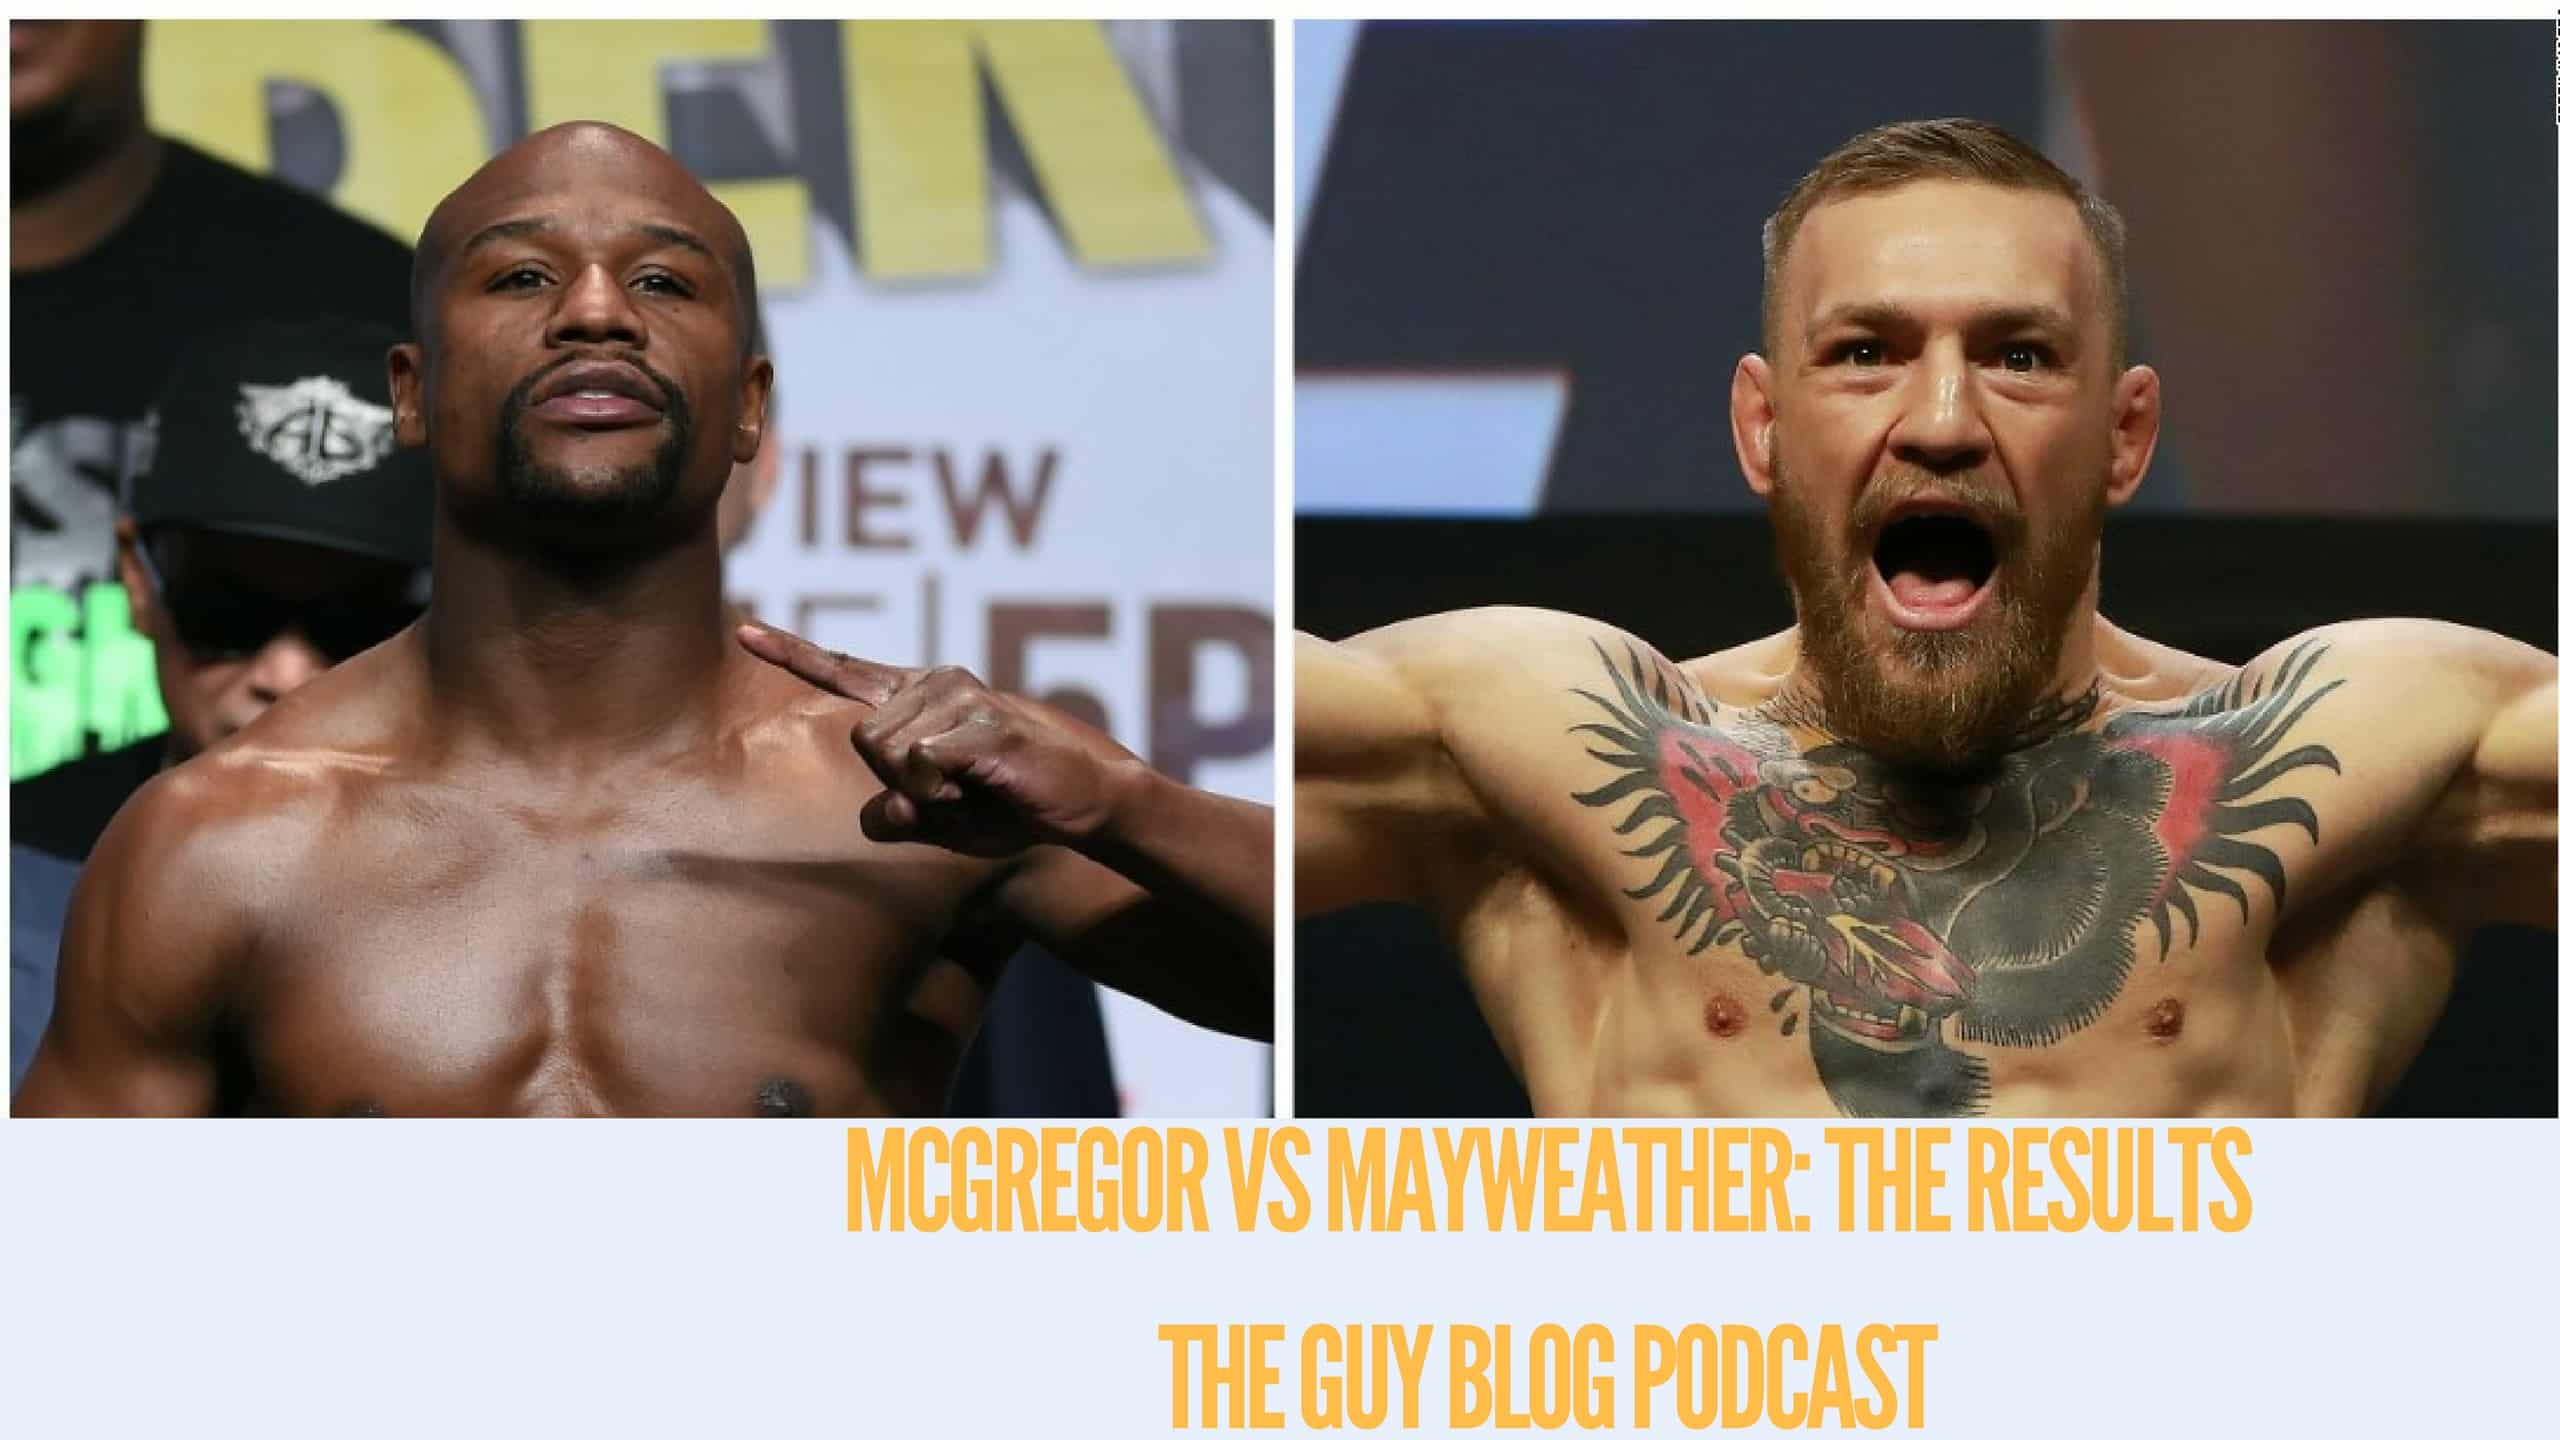 TGBP 030 MCGREGOR VS MAYWEATHER: THE RESULTS